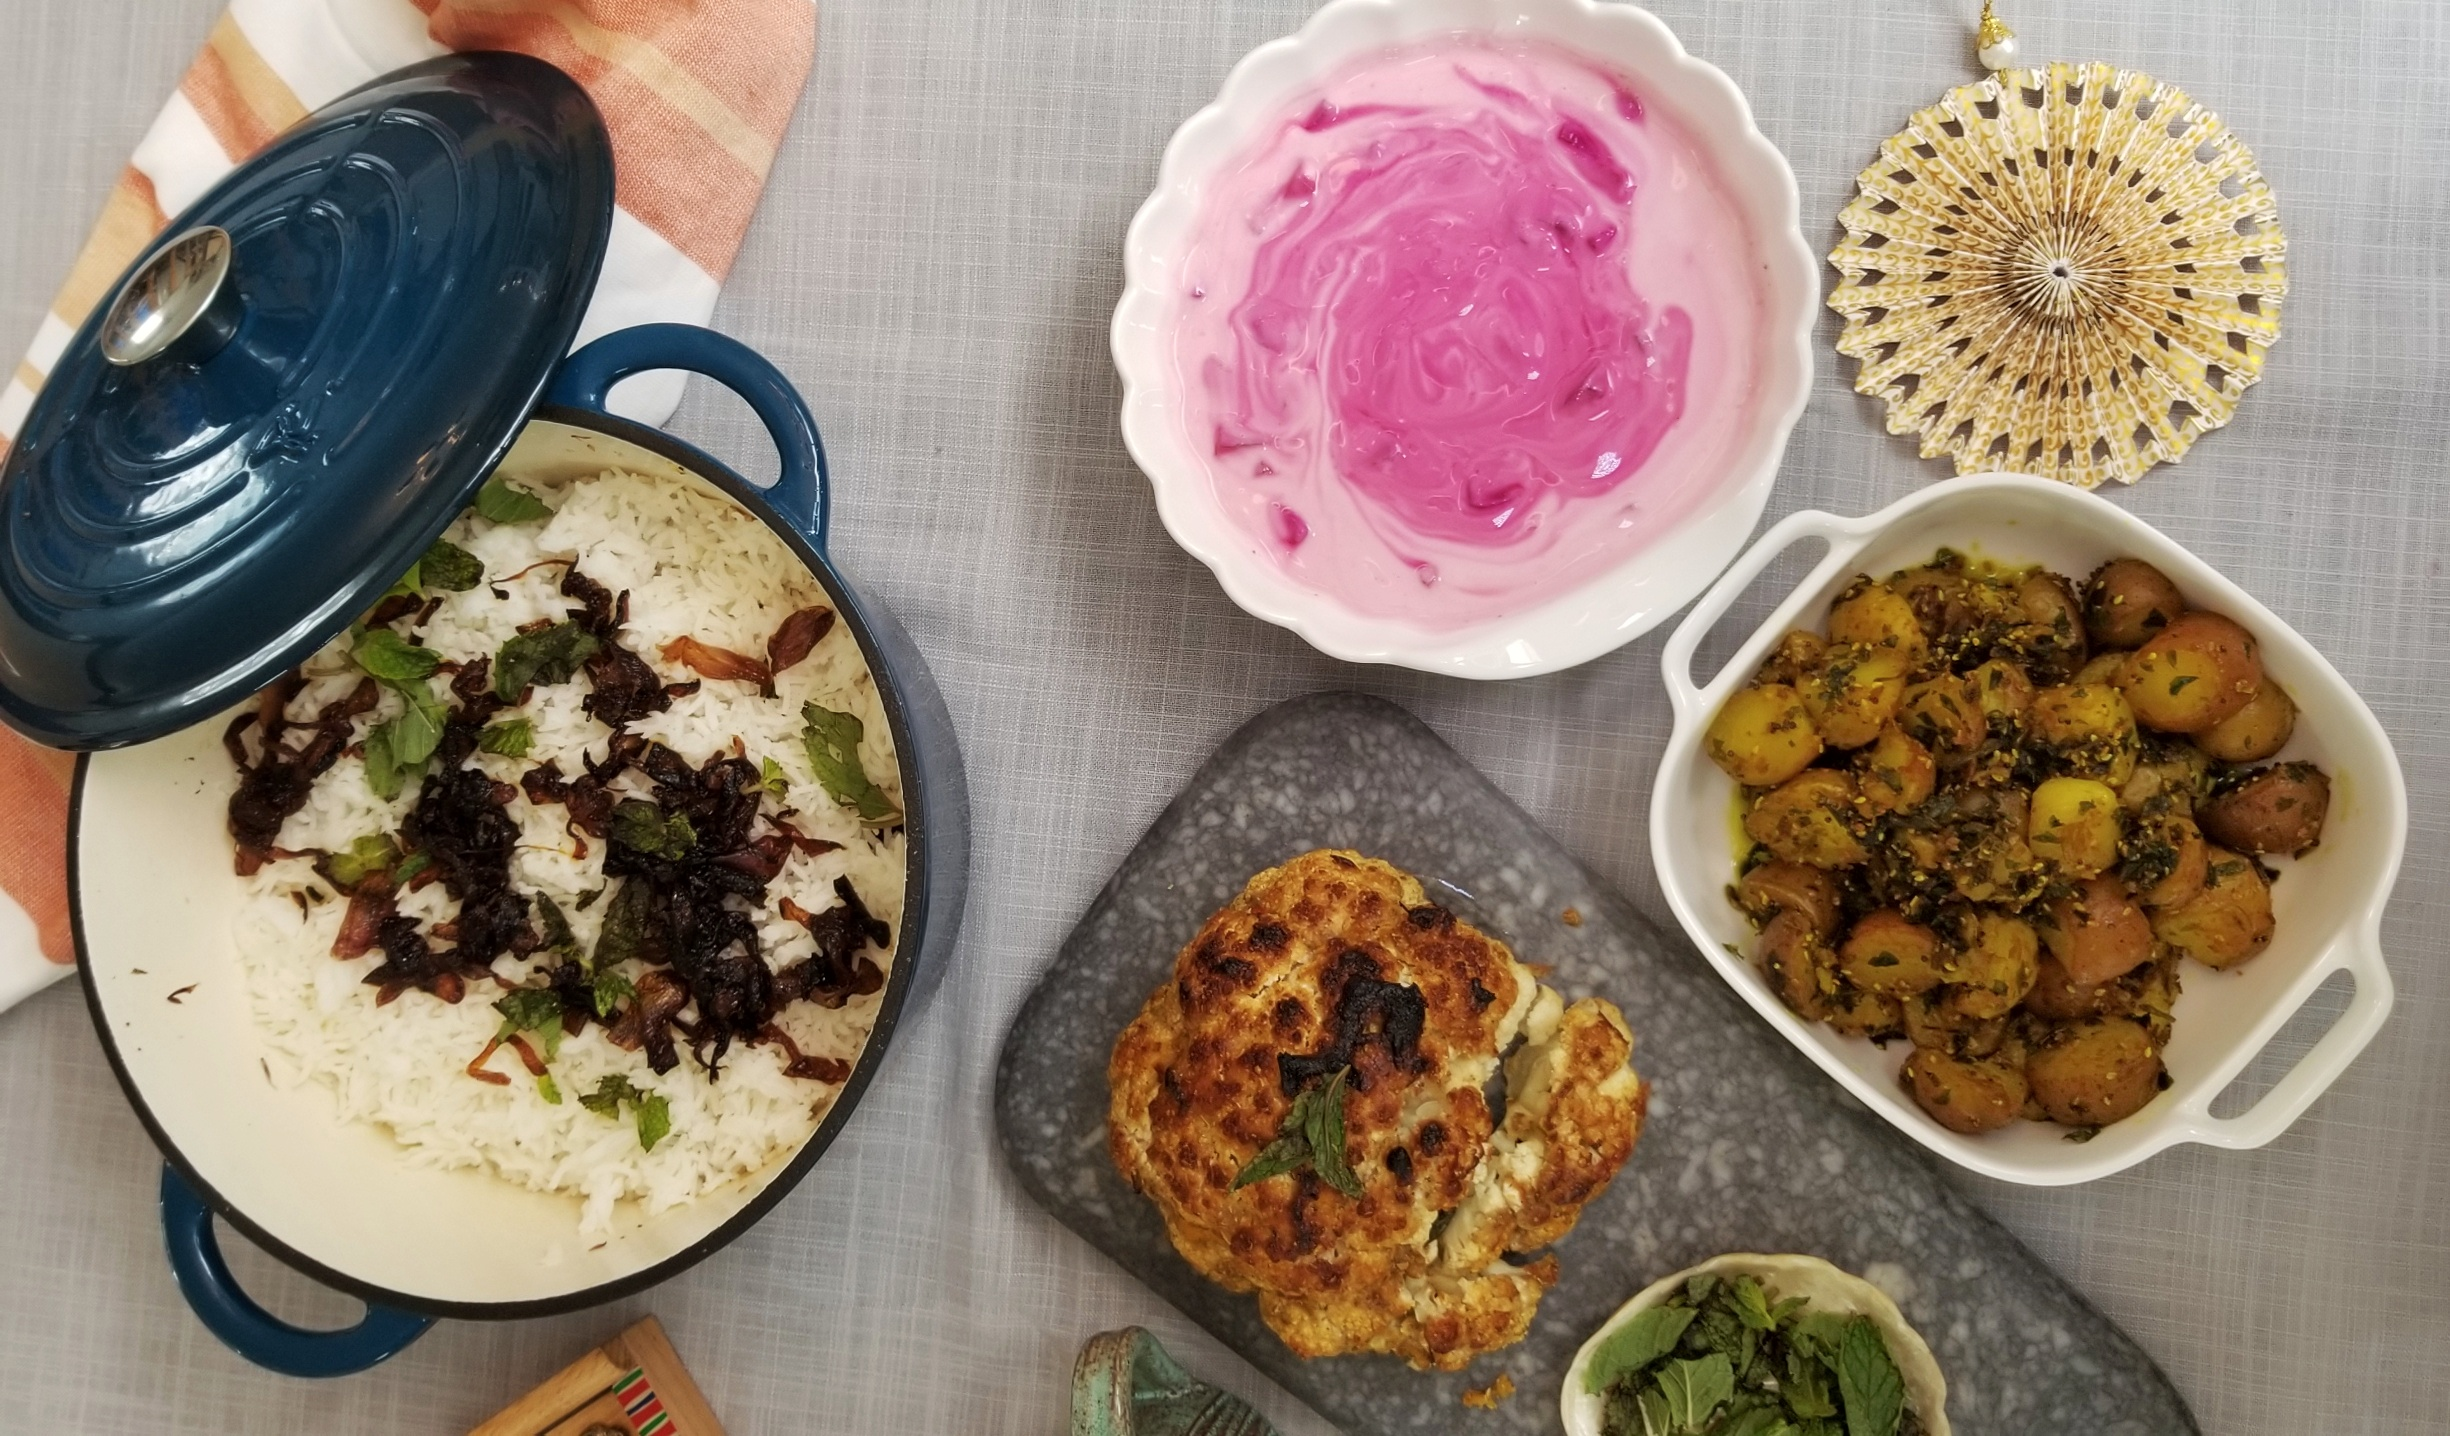 2019 food trends   From Brown food to Cross-Cultural cuisine, food trends of the year   Big Food Trends 2019   MapleandMarigold